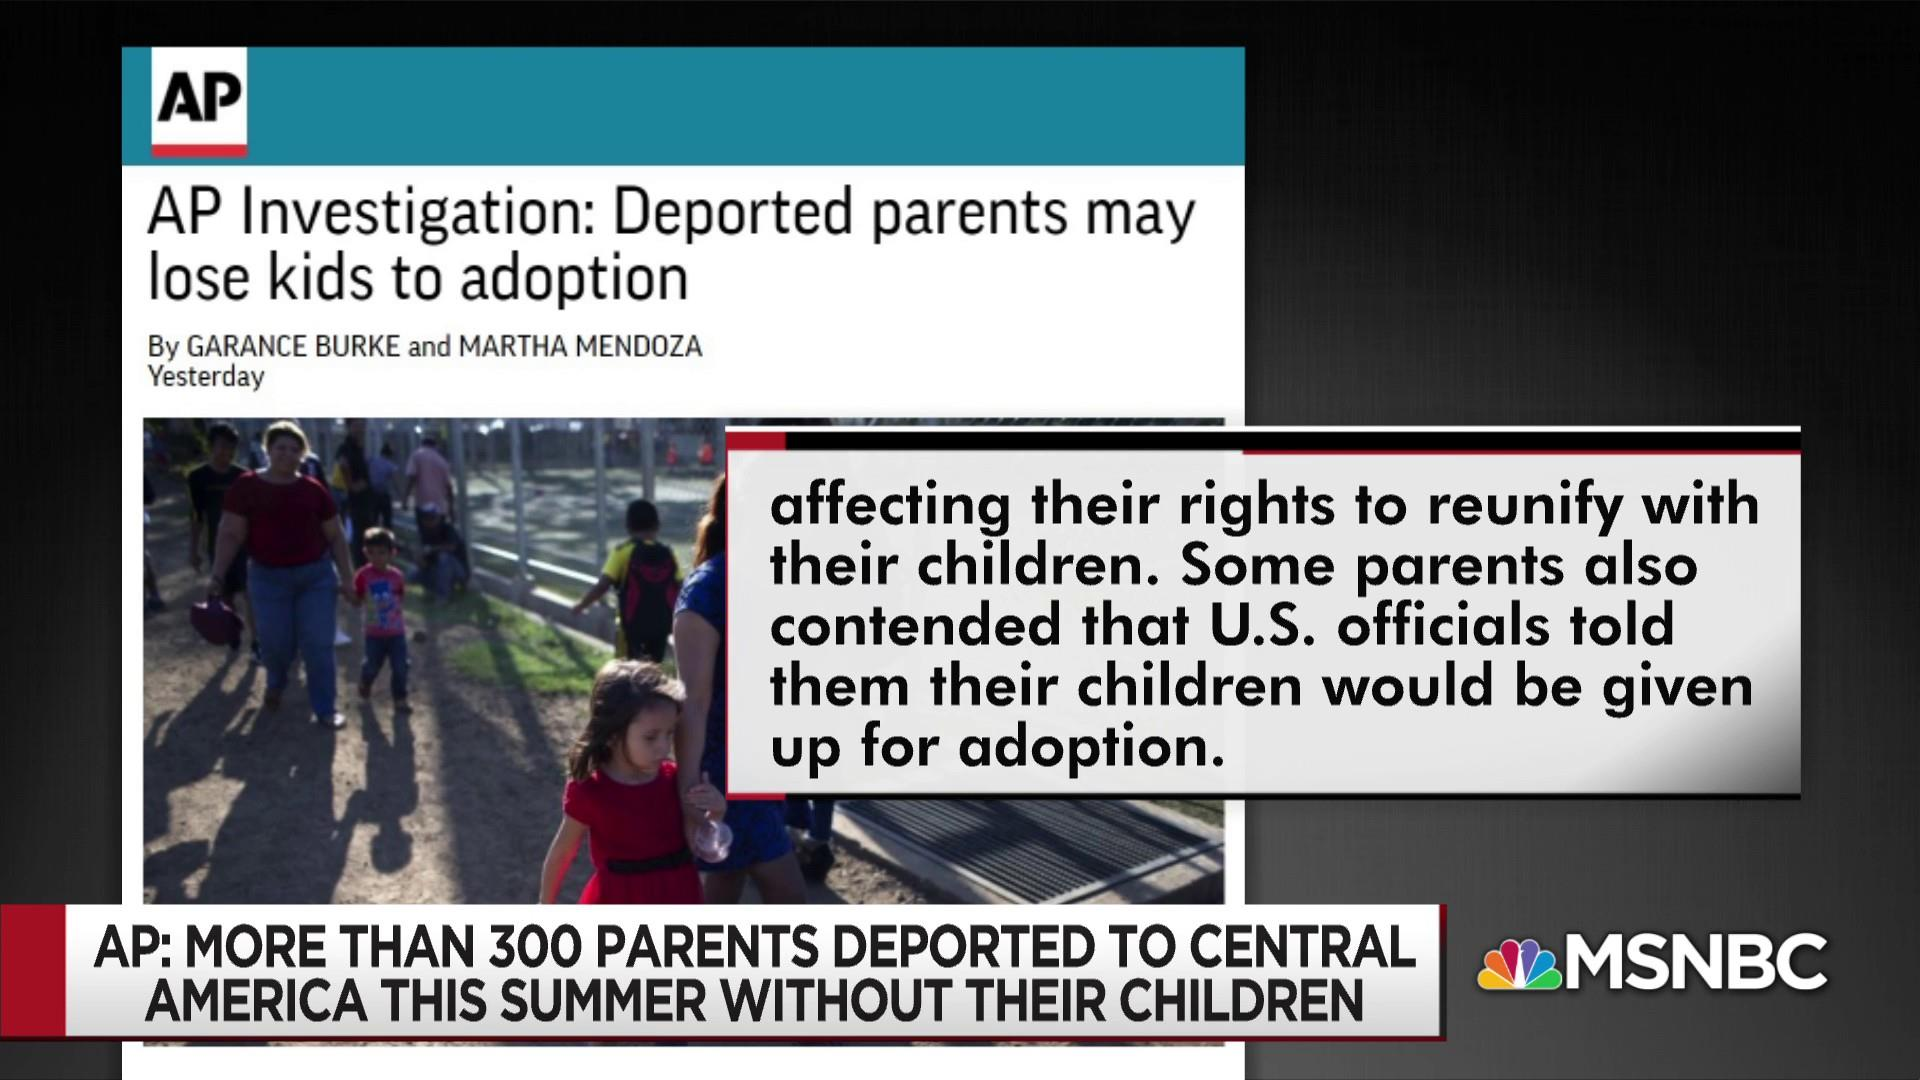 Deported parents may lose kids to adoption, investigation finds